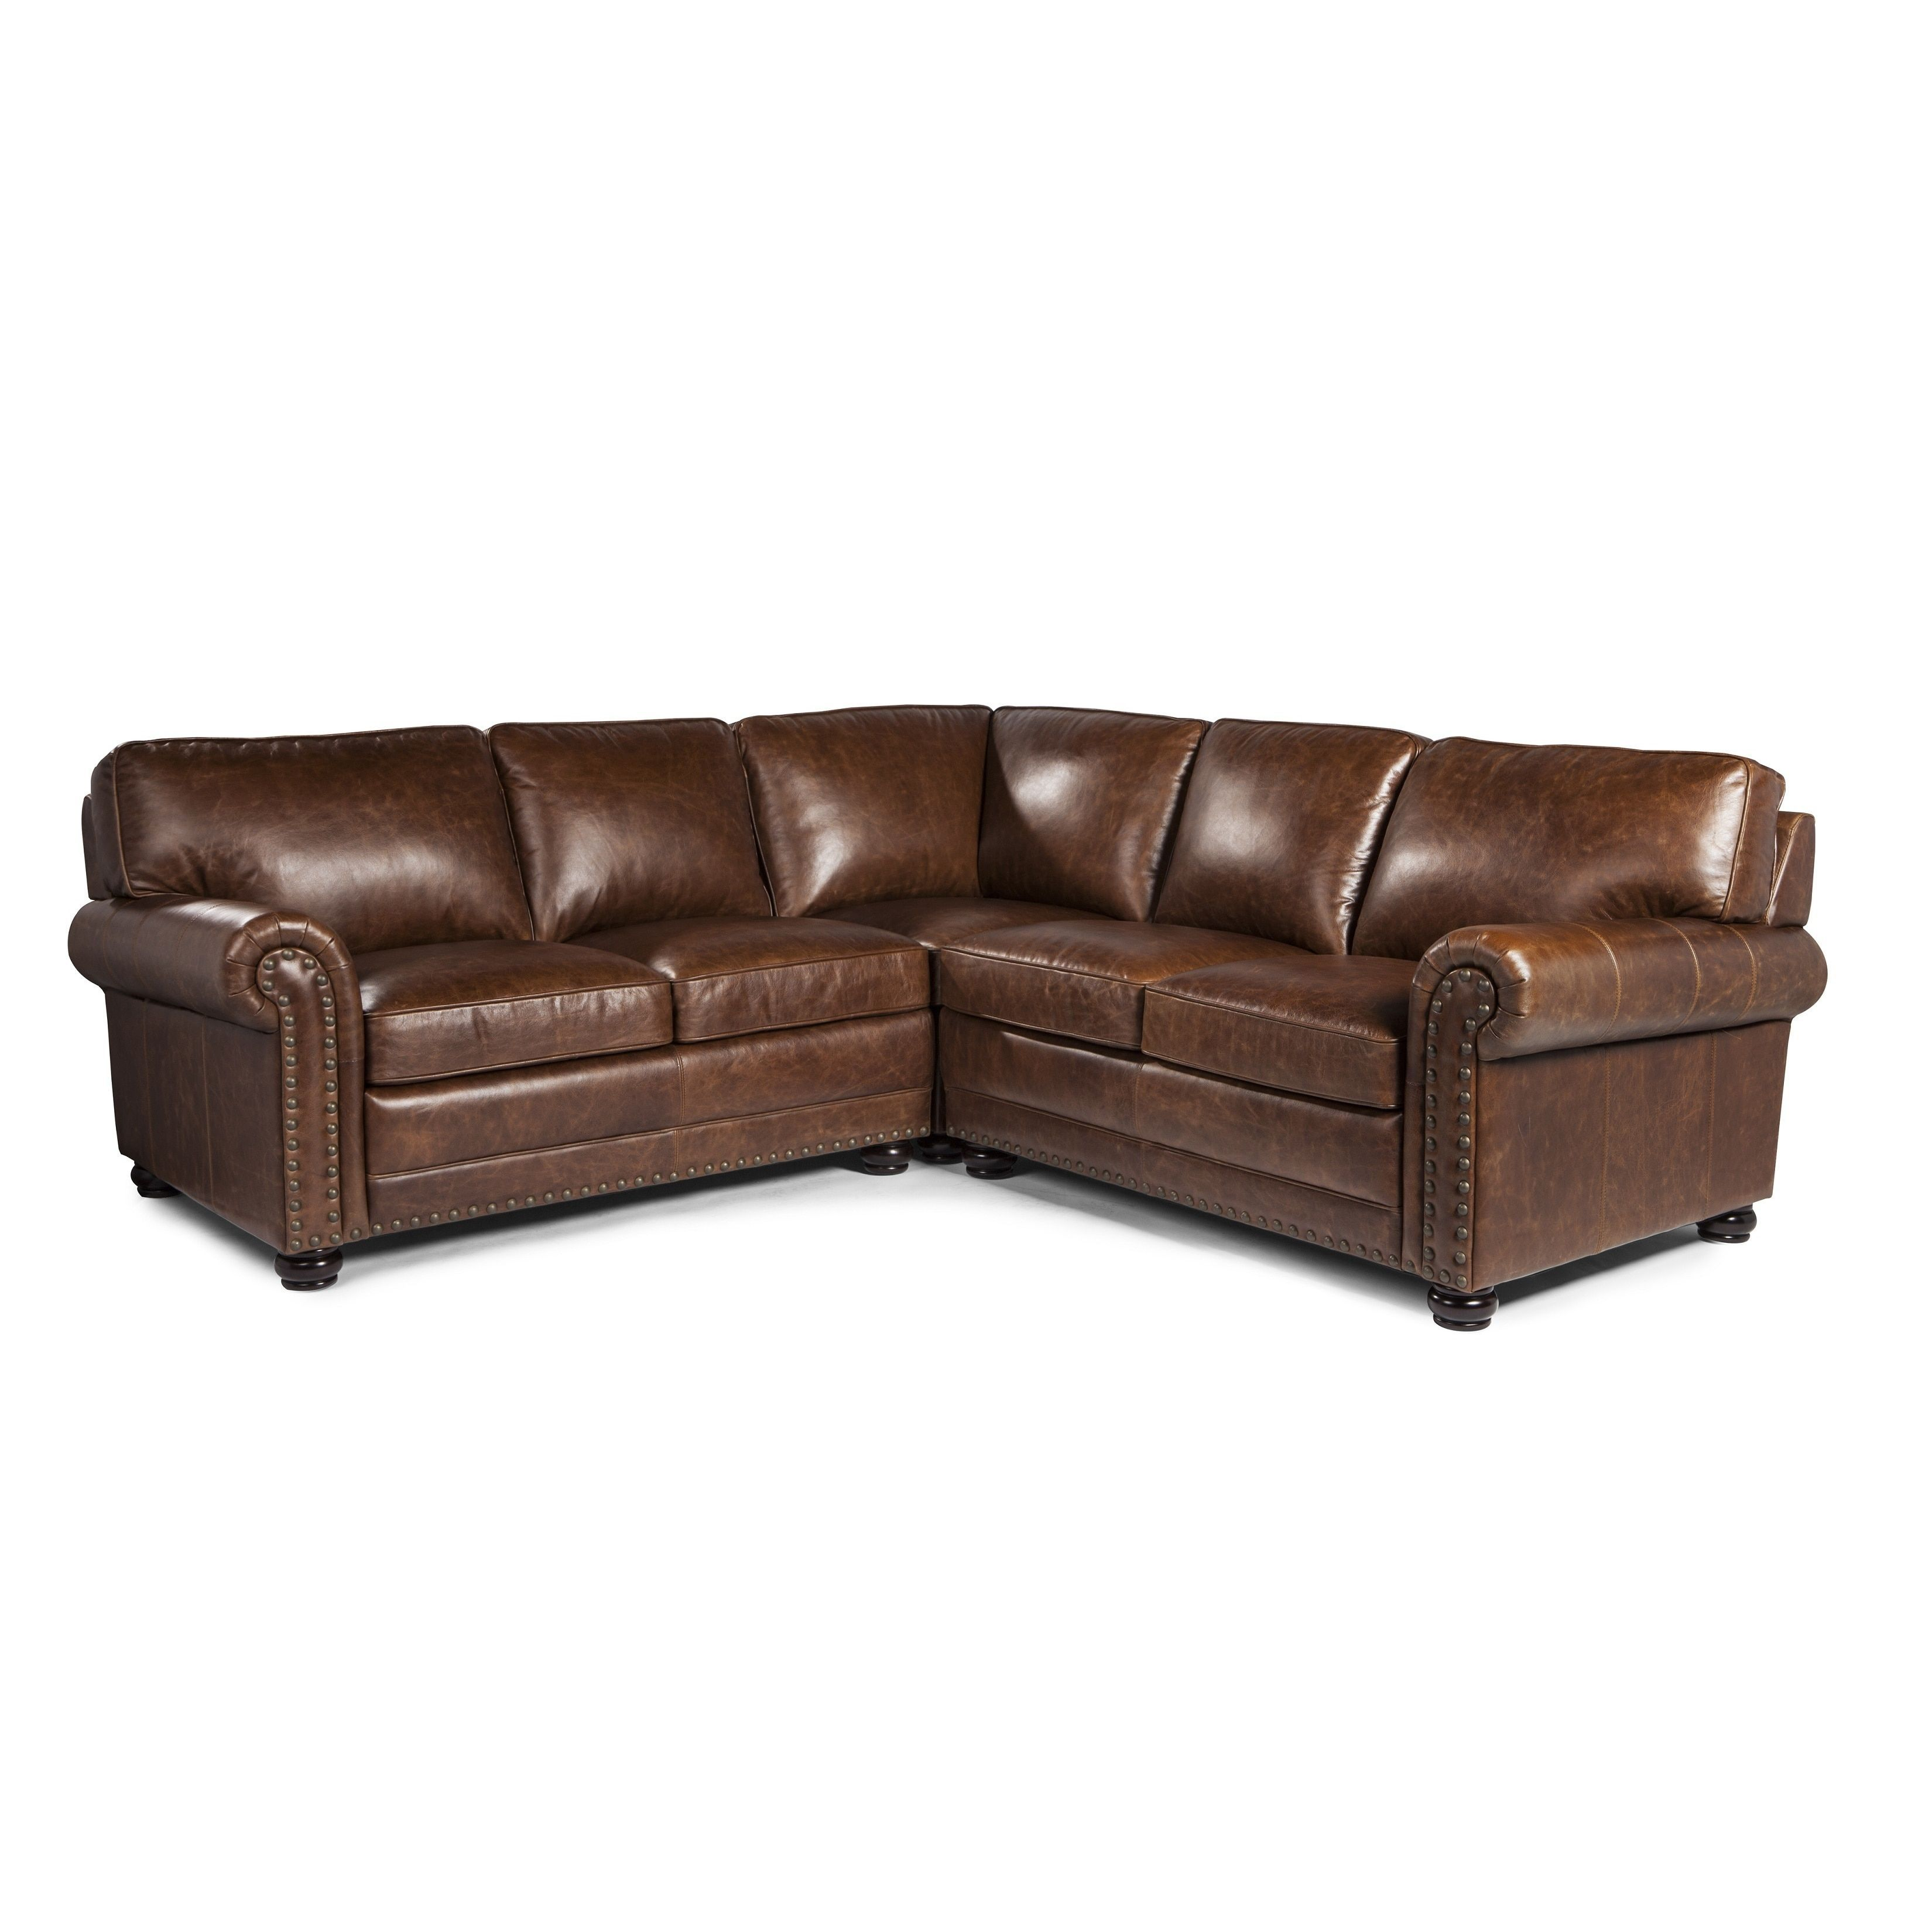 Tremendous Genesis Cocoa Brompton Leather Sofa Sectional By Lazzaro Gamerscity Chair Design For Home Gamerscityorg